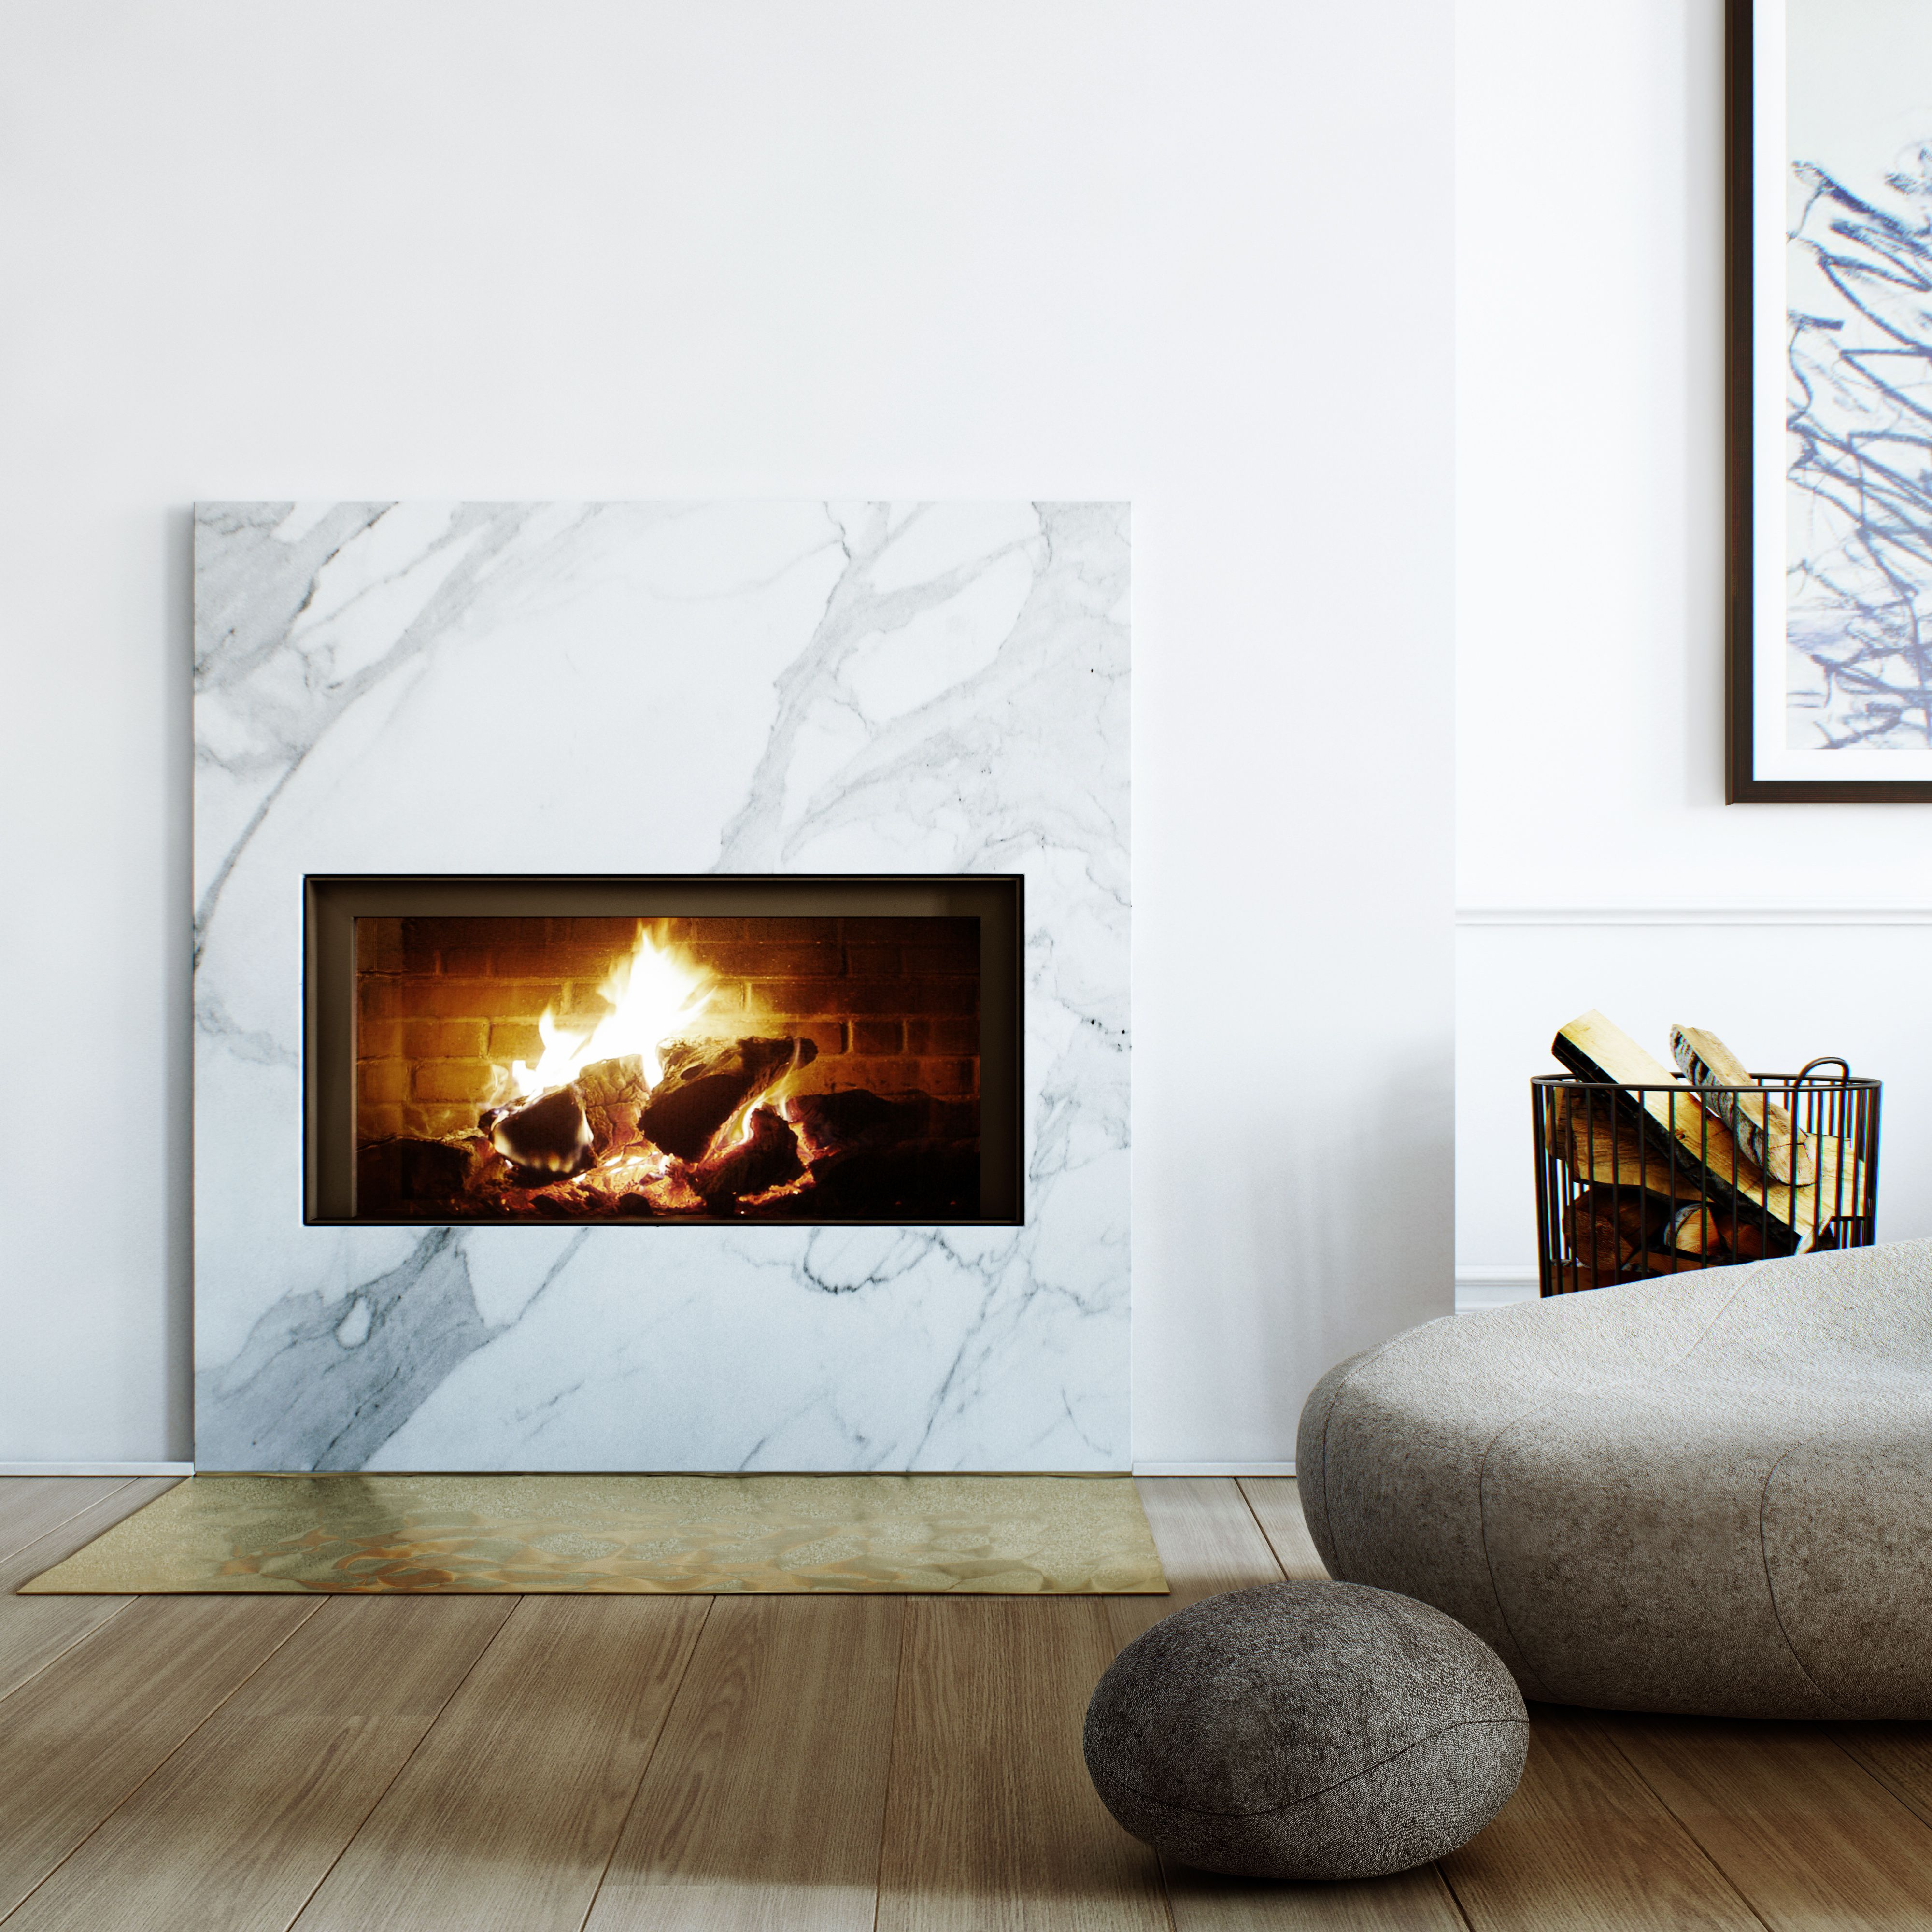 Marble Fireplace Surround, Marble Fireplaces, Modern Fireplaces, Fireplace Surrounds, Marble